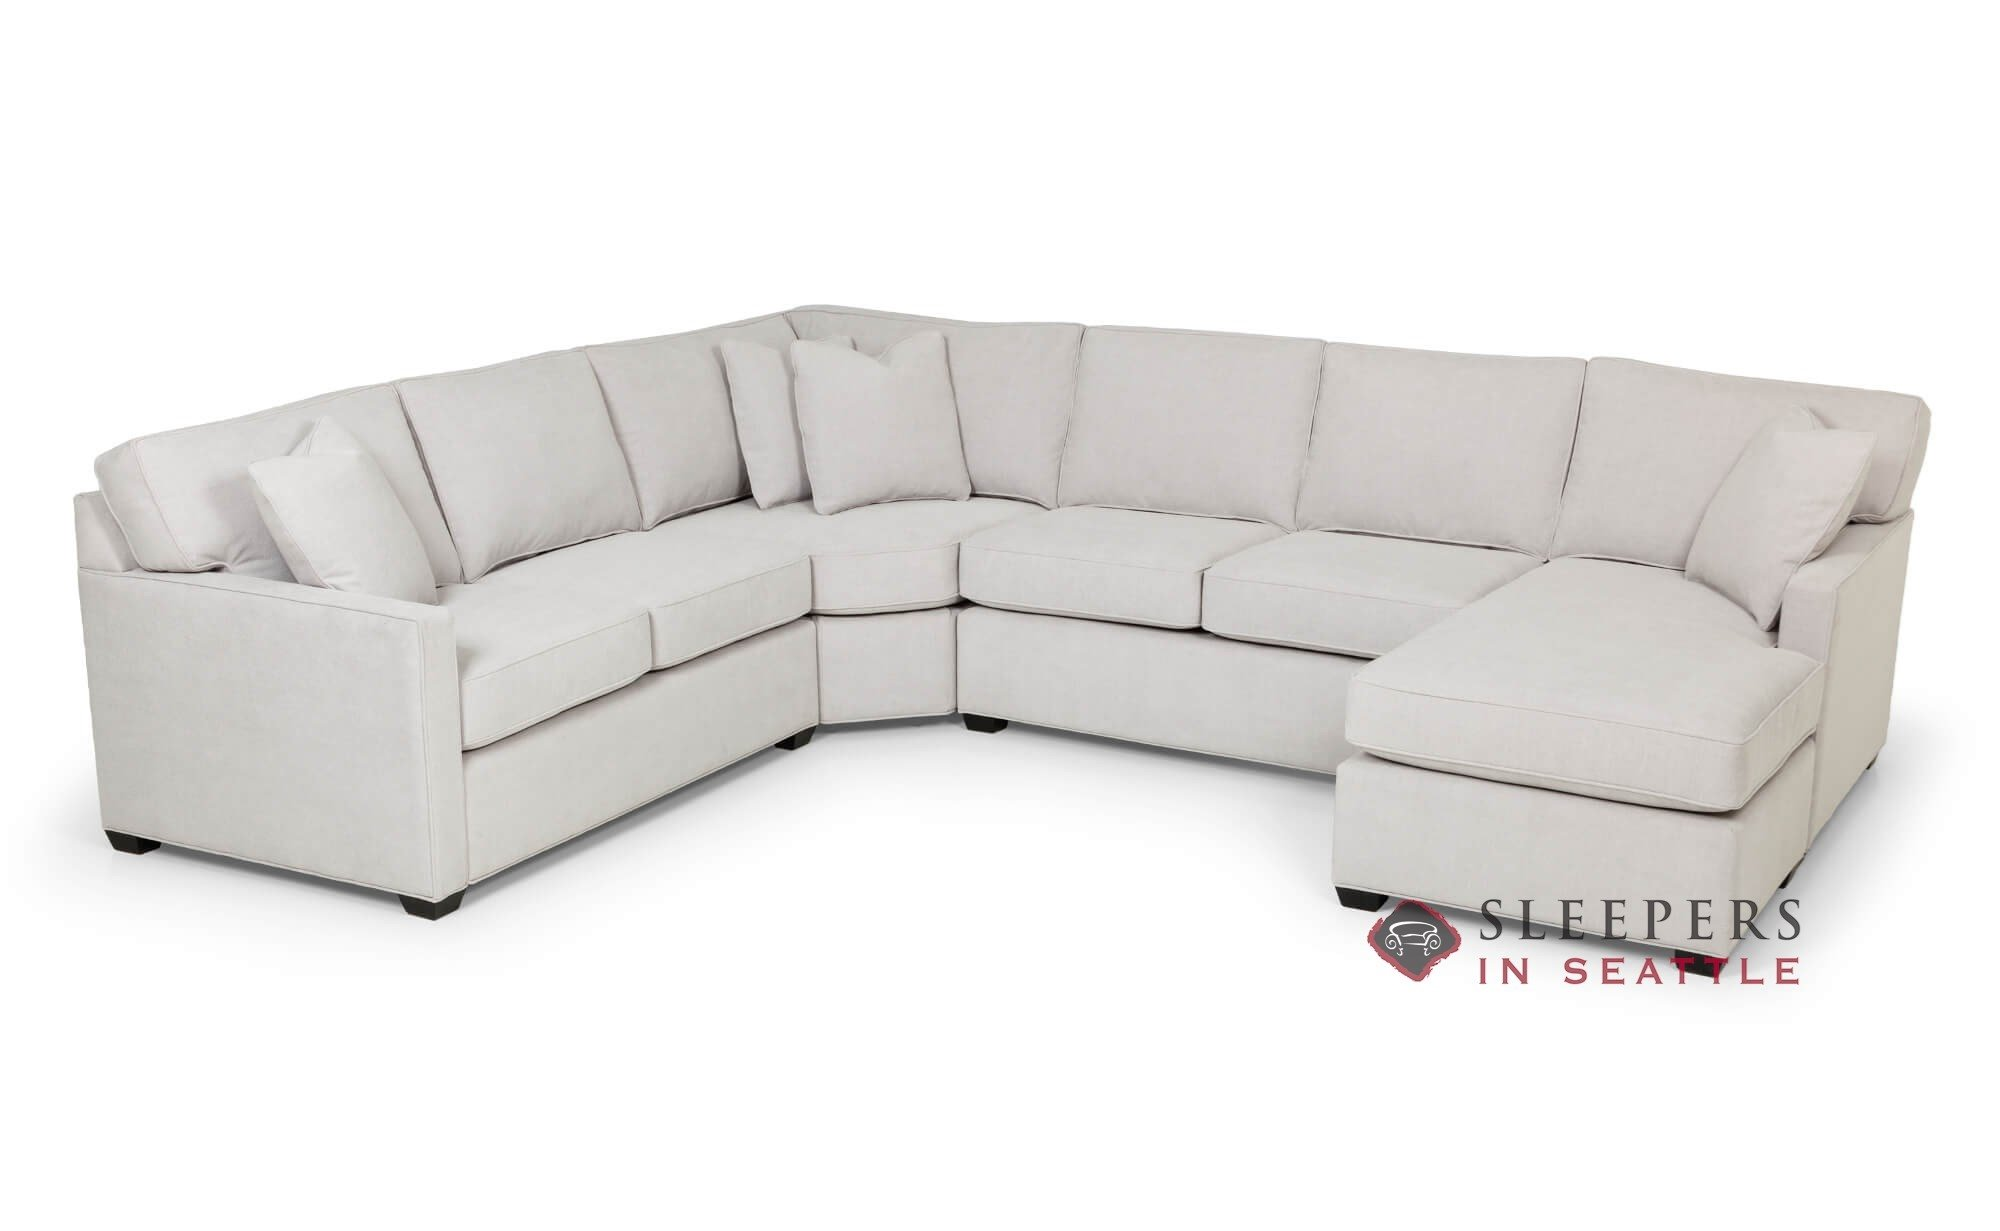 Stanton 387 U Shape True Sectional Queen Sleeper Sofa